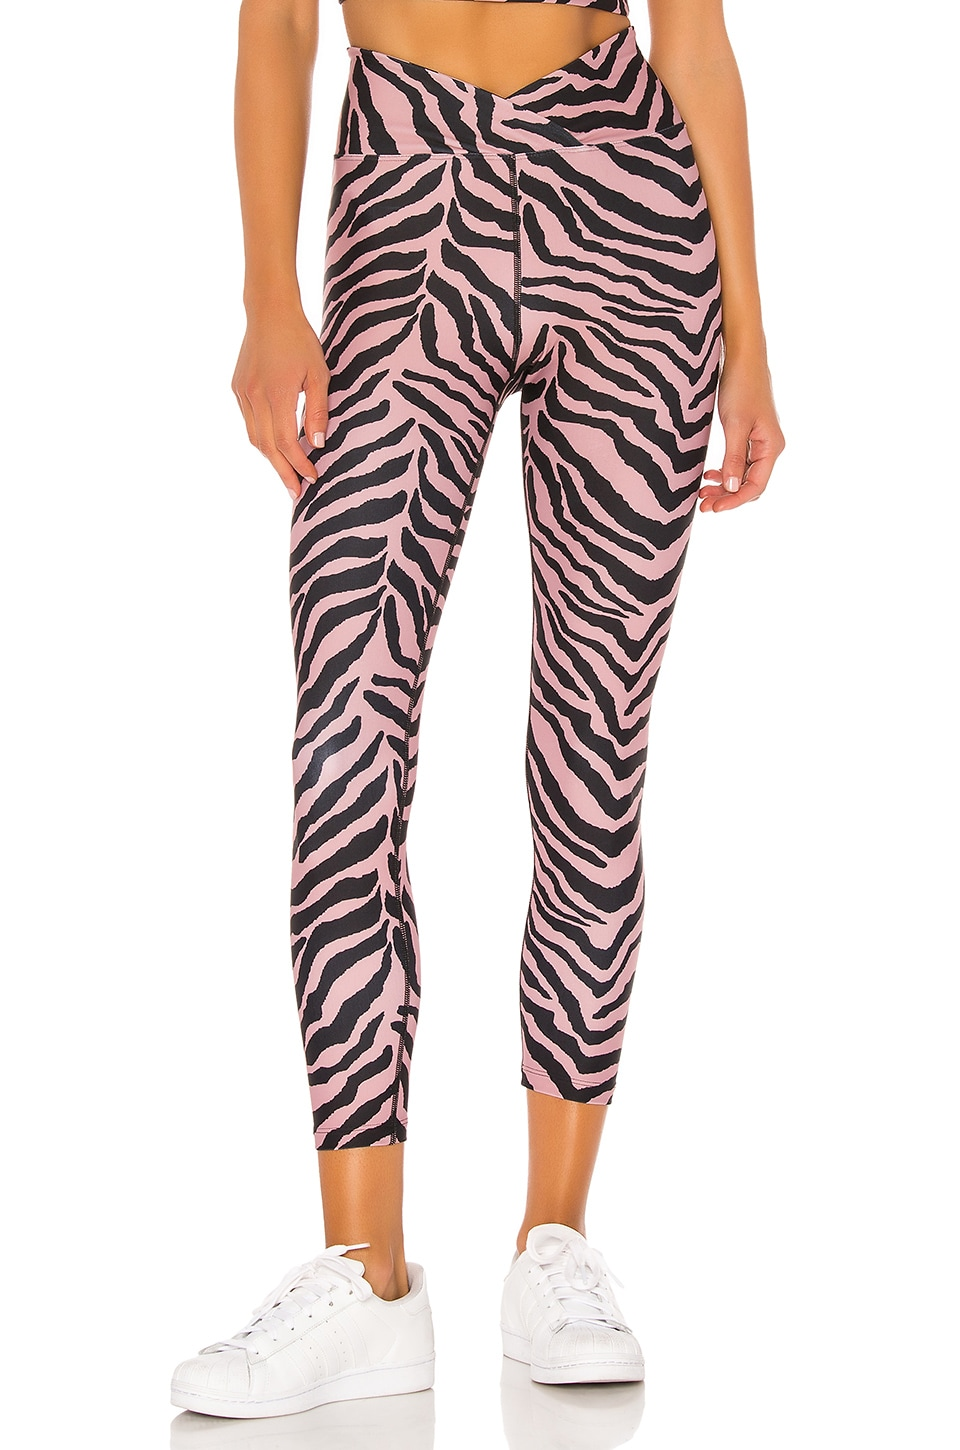 YEAR OF OURS Veronica Tiger Legging in Rose